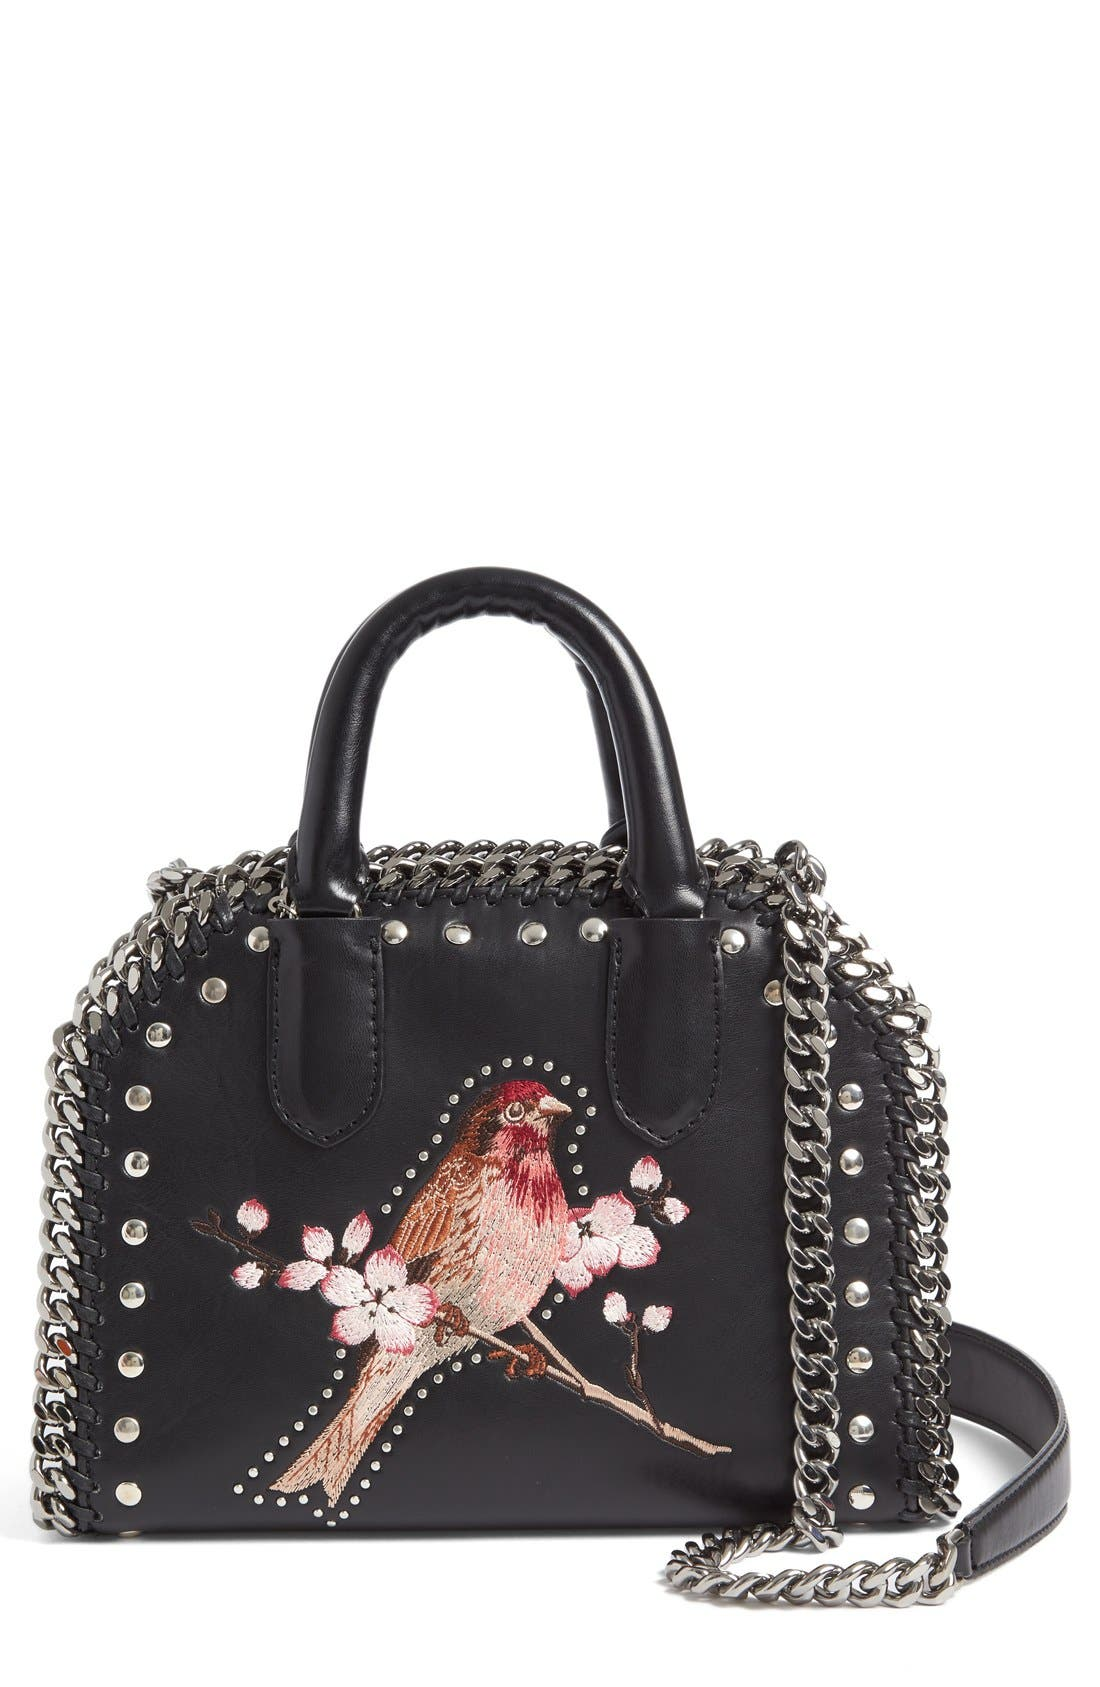 STELLA MCCARTNEY Mini Falabella Embroidered Faux Leather Tote